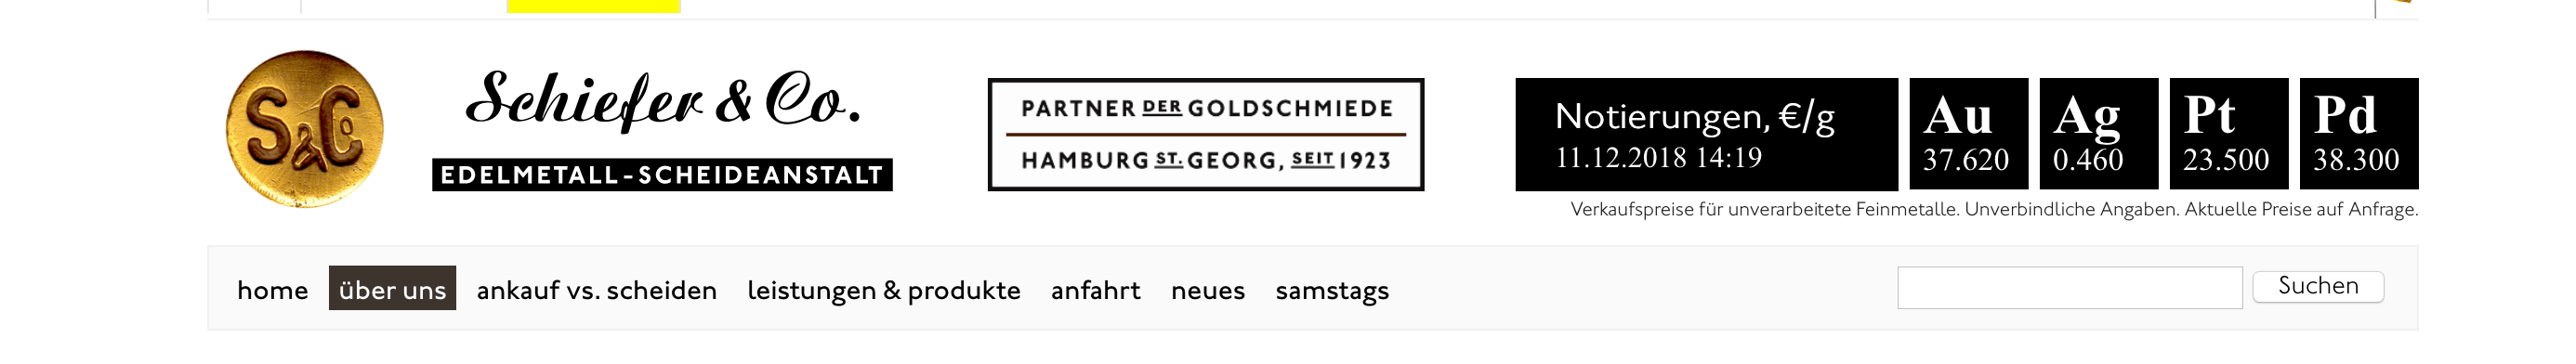 Schiefer Goldpreis